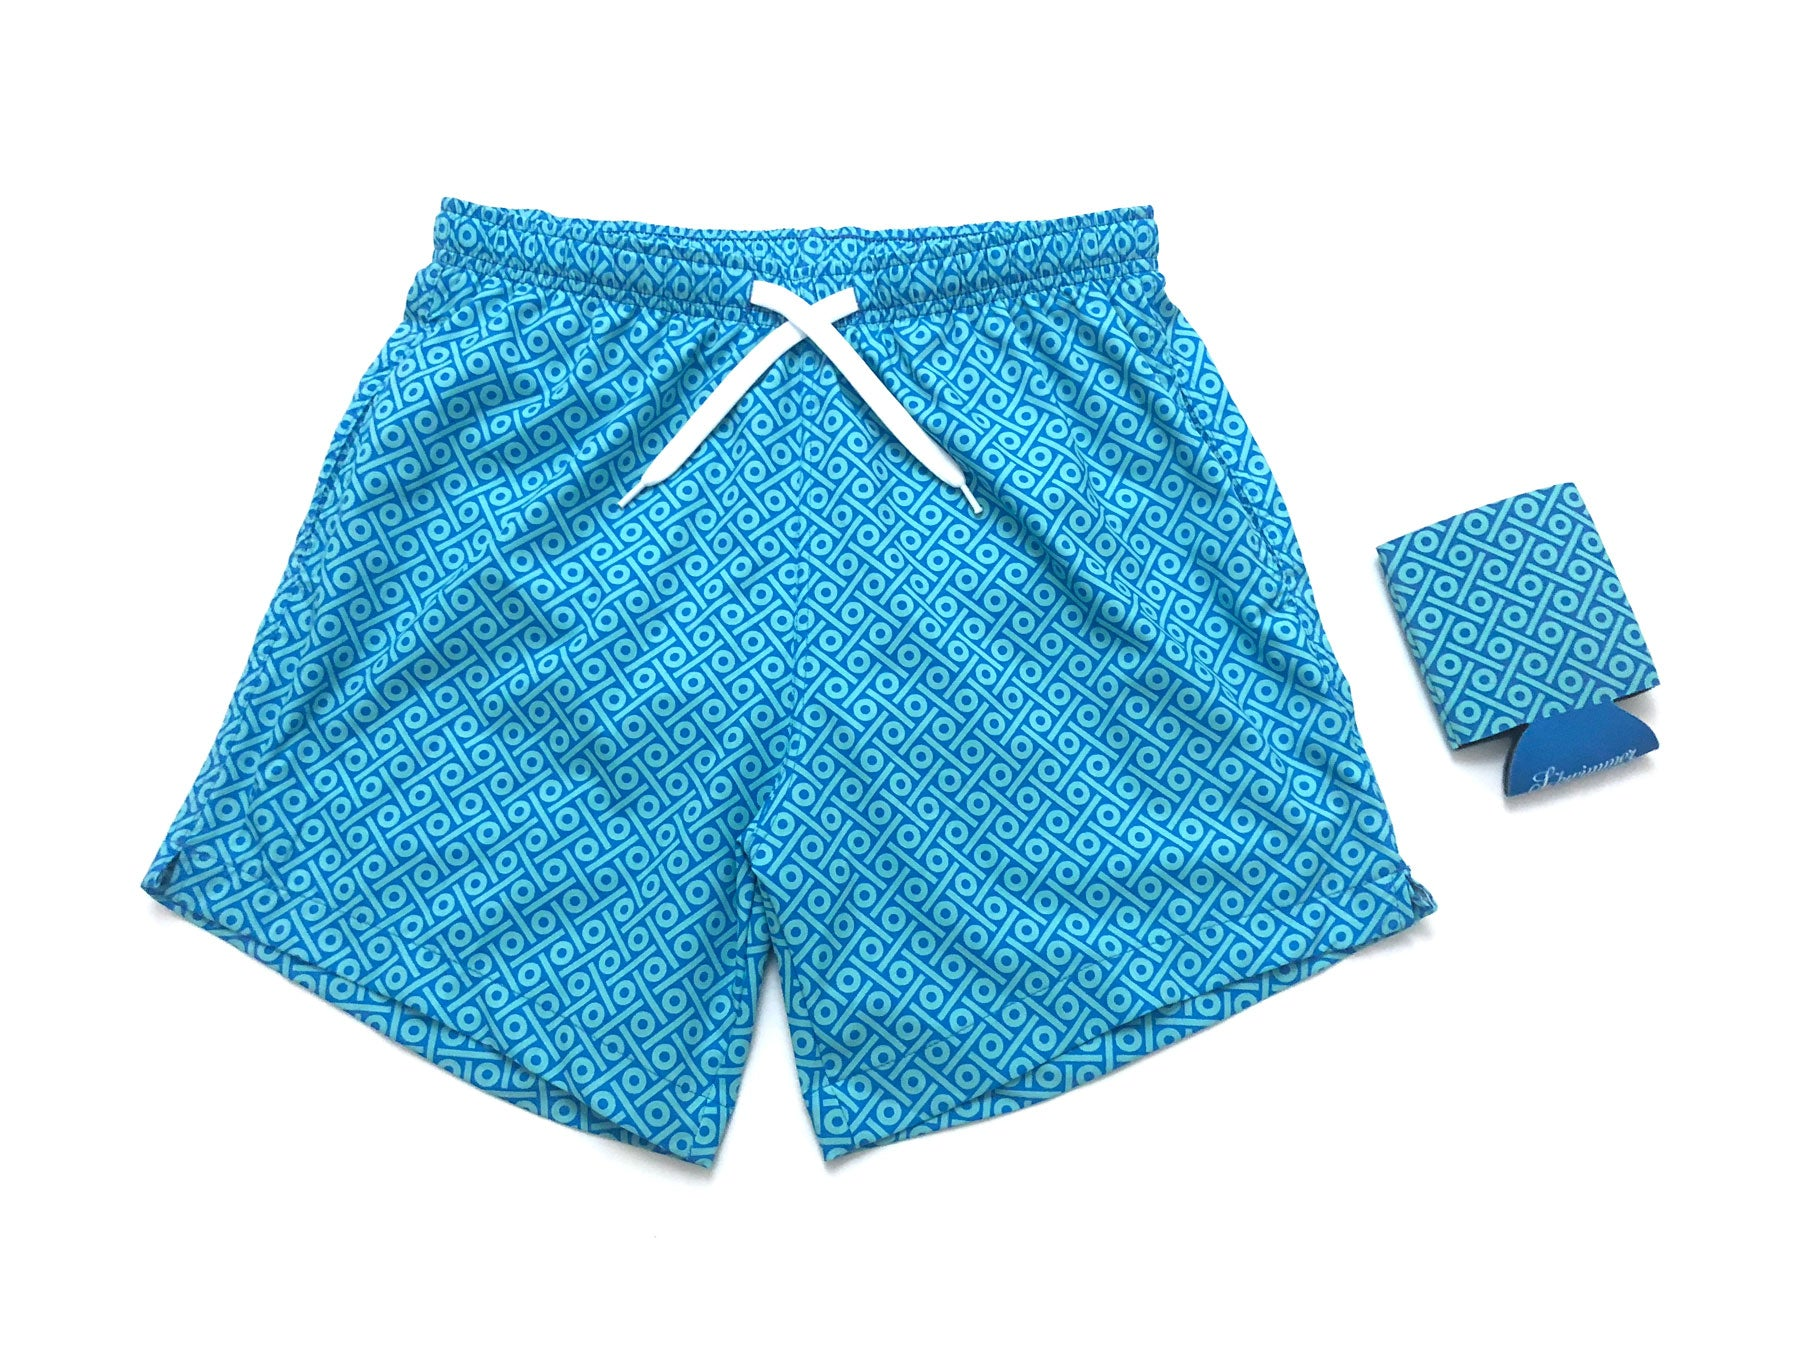 Schwimmer Men's Swim Trunks Bathing Suit